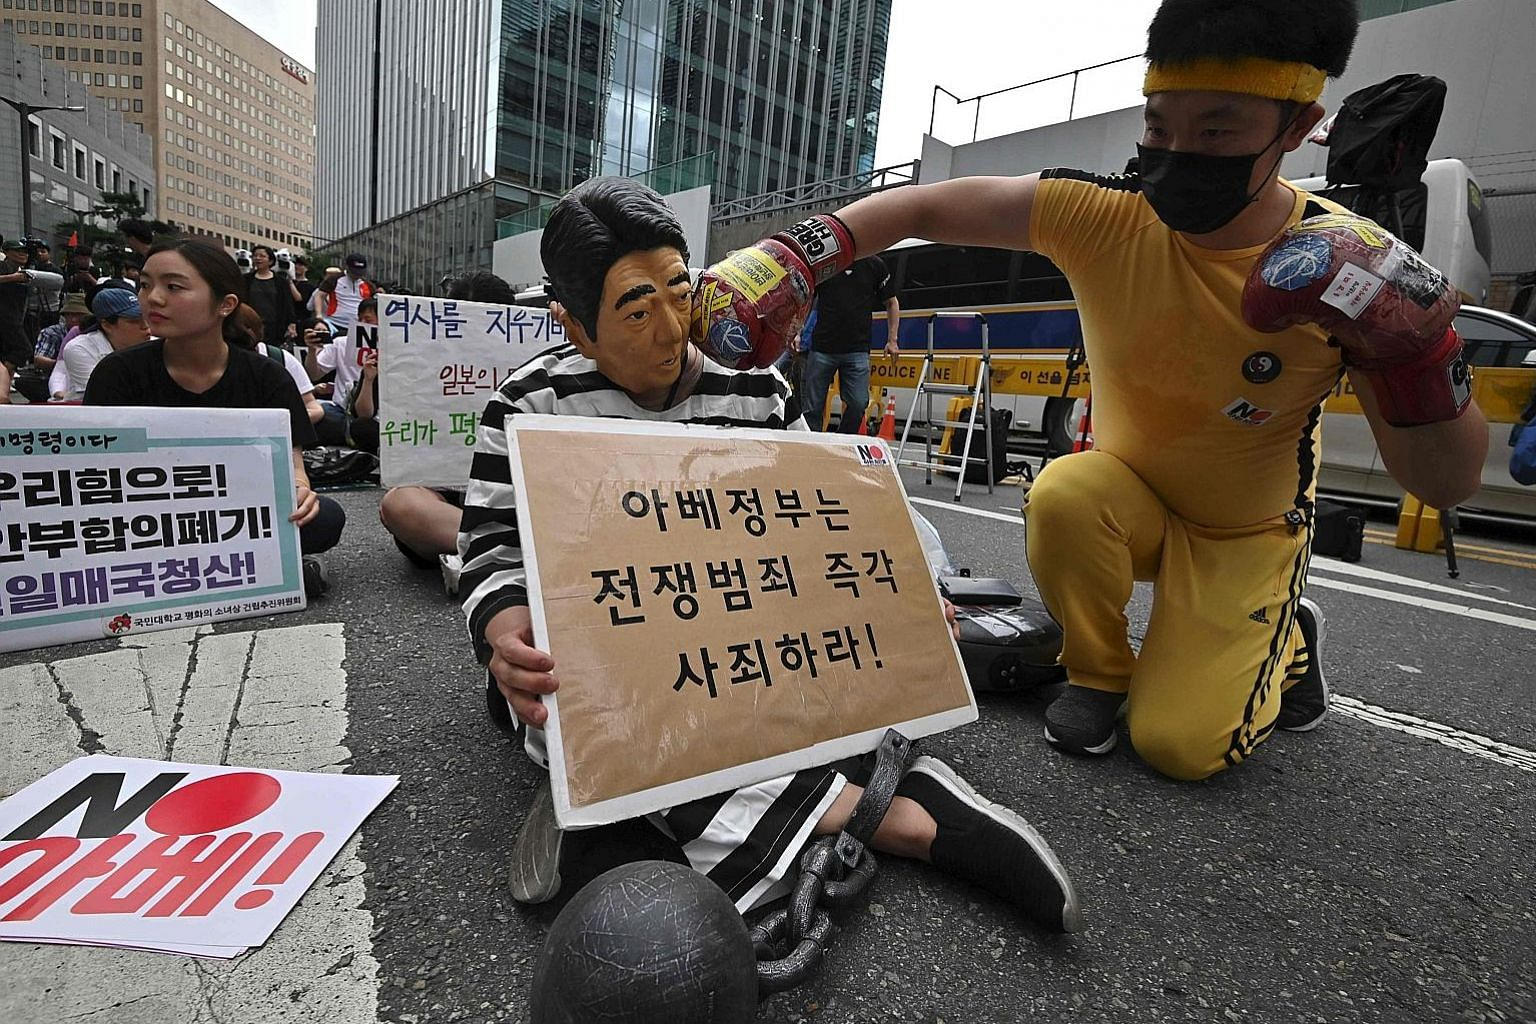 A South Korean protester wearing a mask depicting Japanese Prime Minister Shinzo Abe, at a rally denouncing Japan for its recent trade restrictions against Seoul, near the Japanese embassy in Seoul on July 20. PHOTO: AGENCE FRANCE-PRESSE